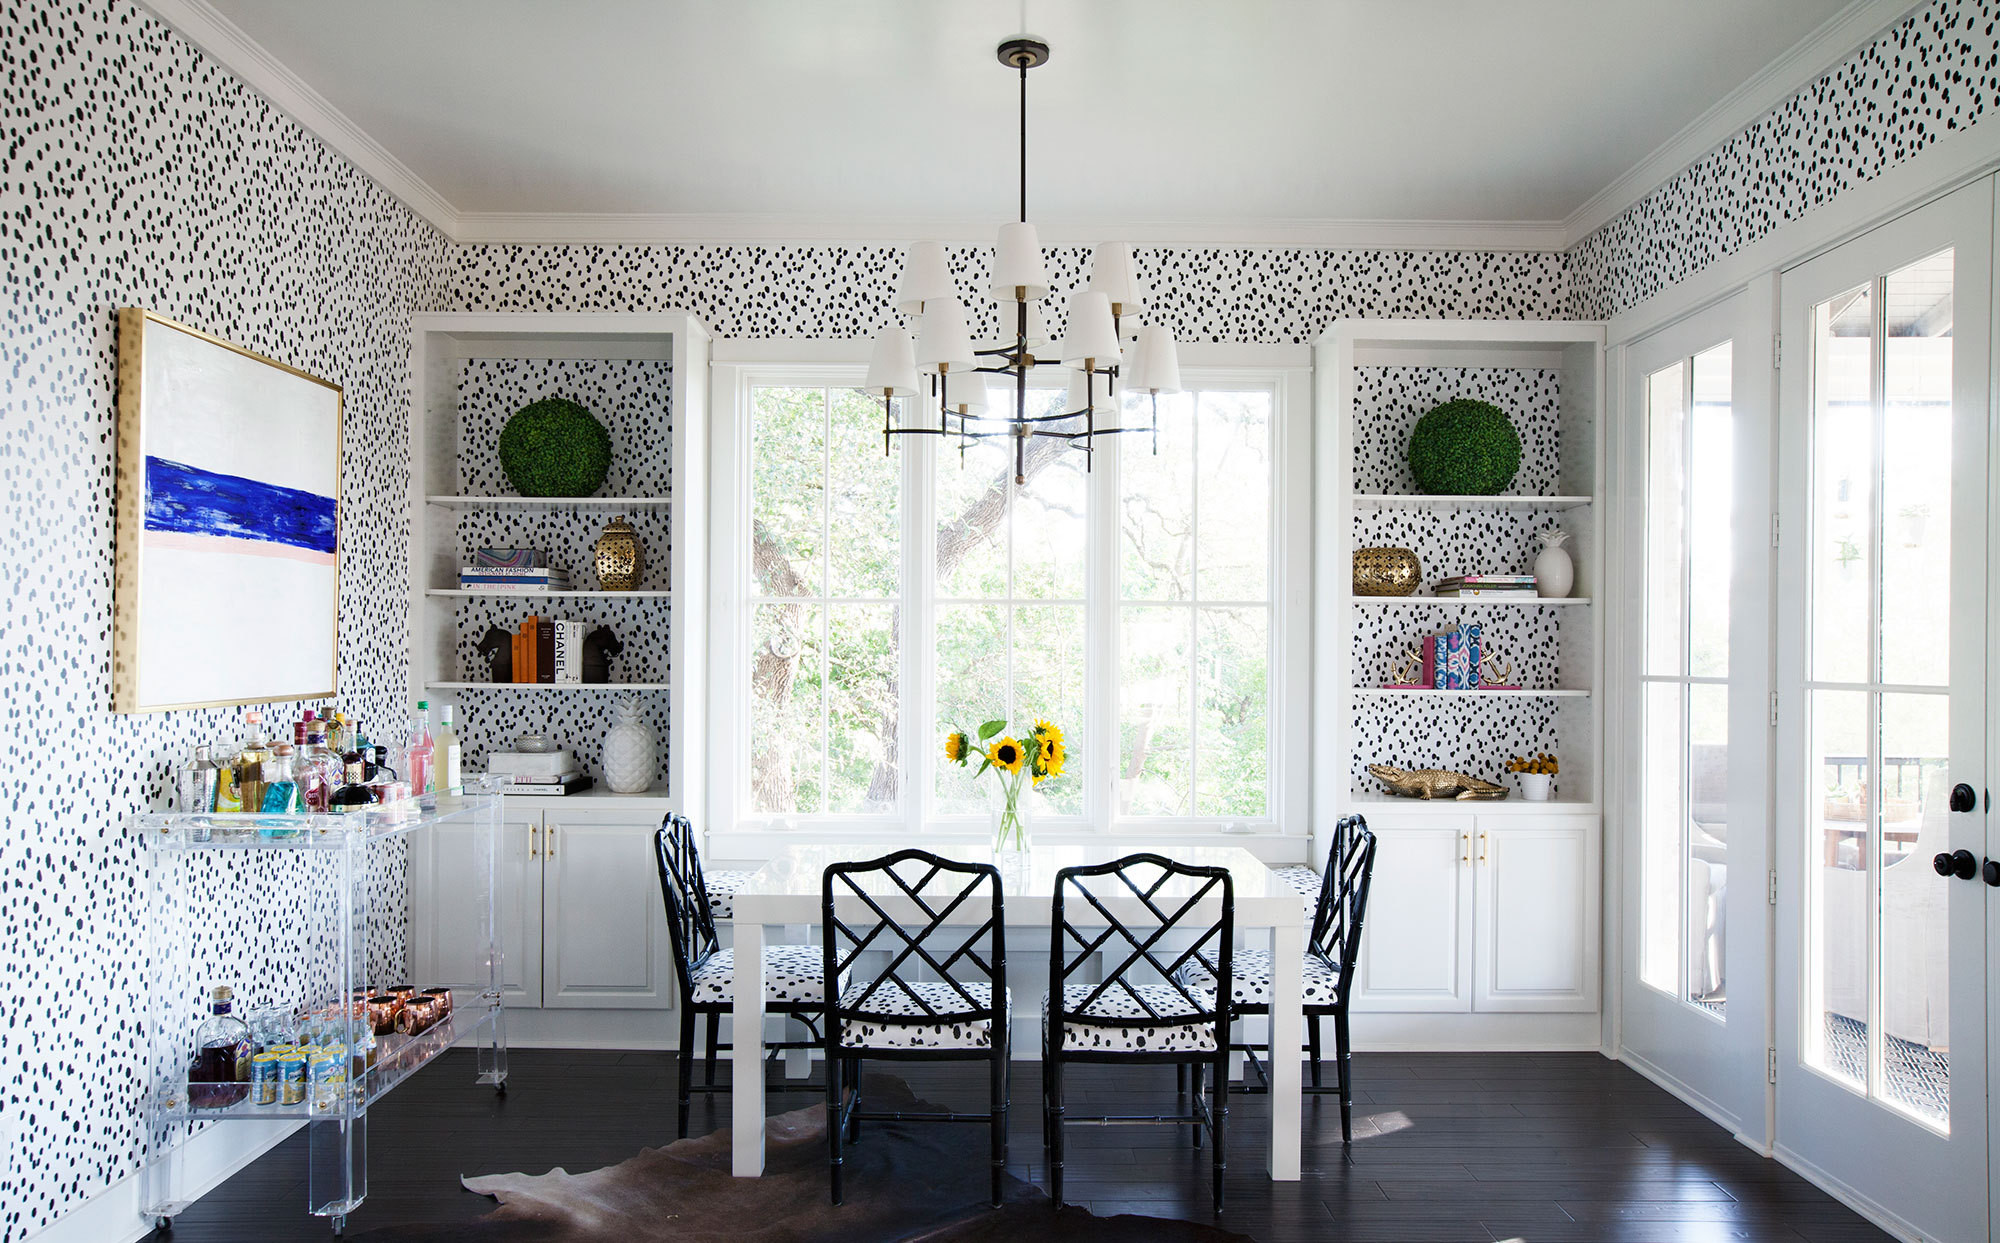 The pattern-clad breakfast nook in the kitchen of designer Katie Kime's Austin home.